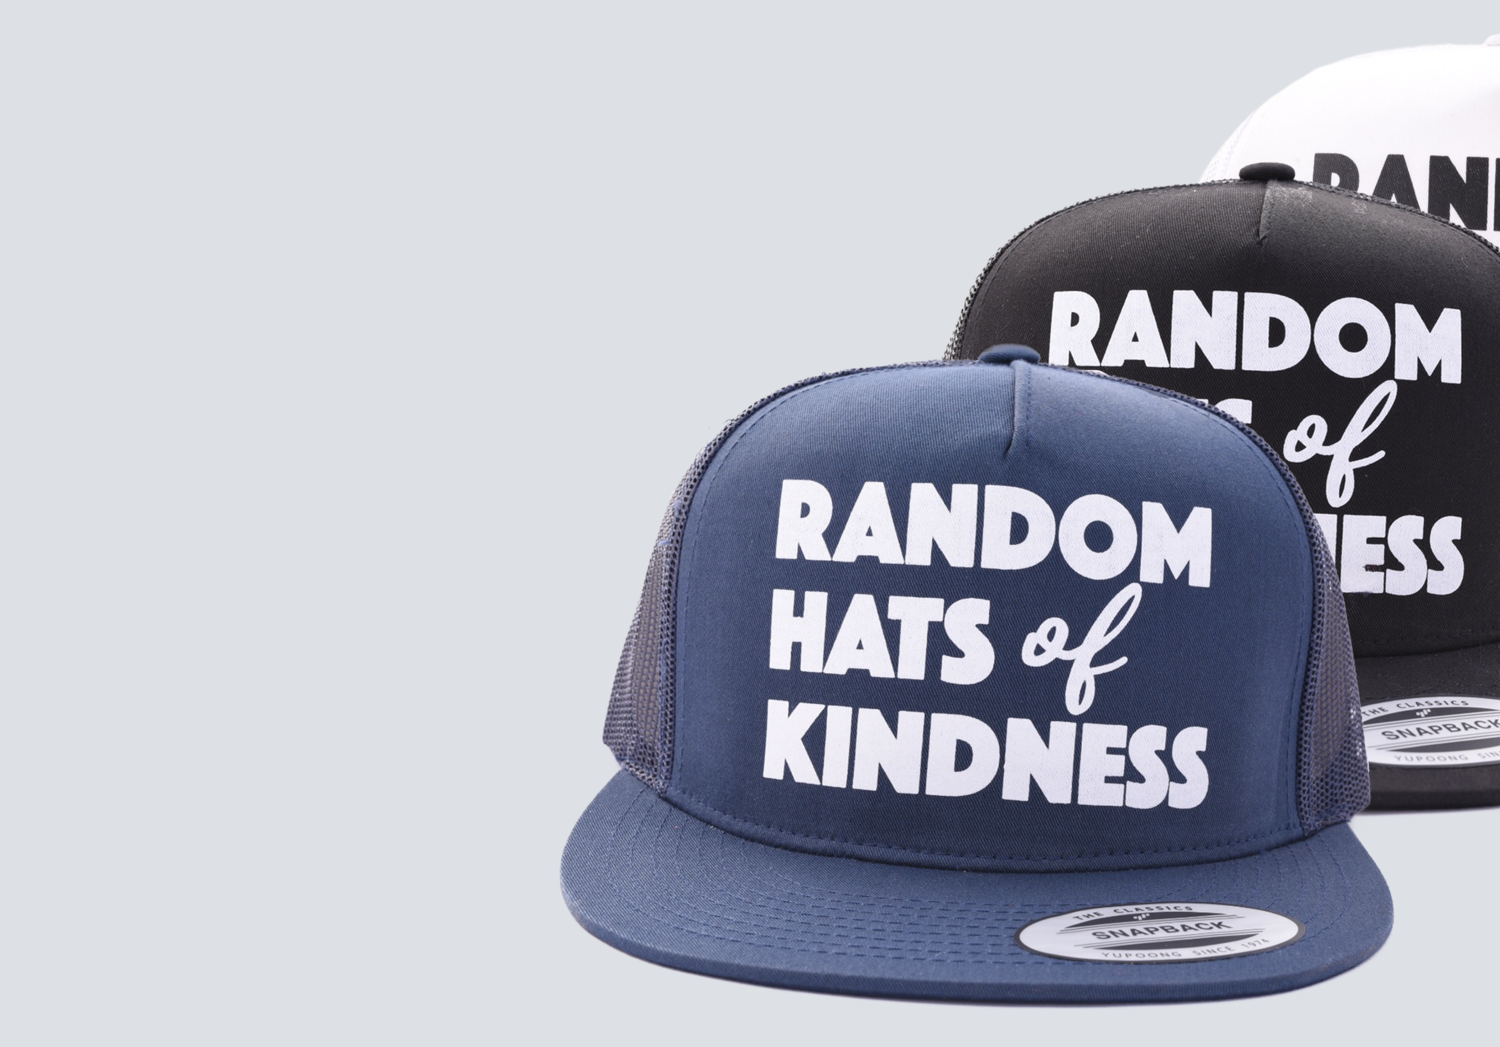 RANDOM HATS of KINDNESS Random Hats of Kindness 0a022dc95af